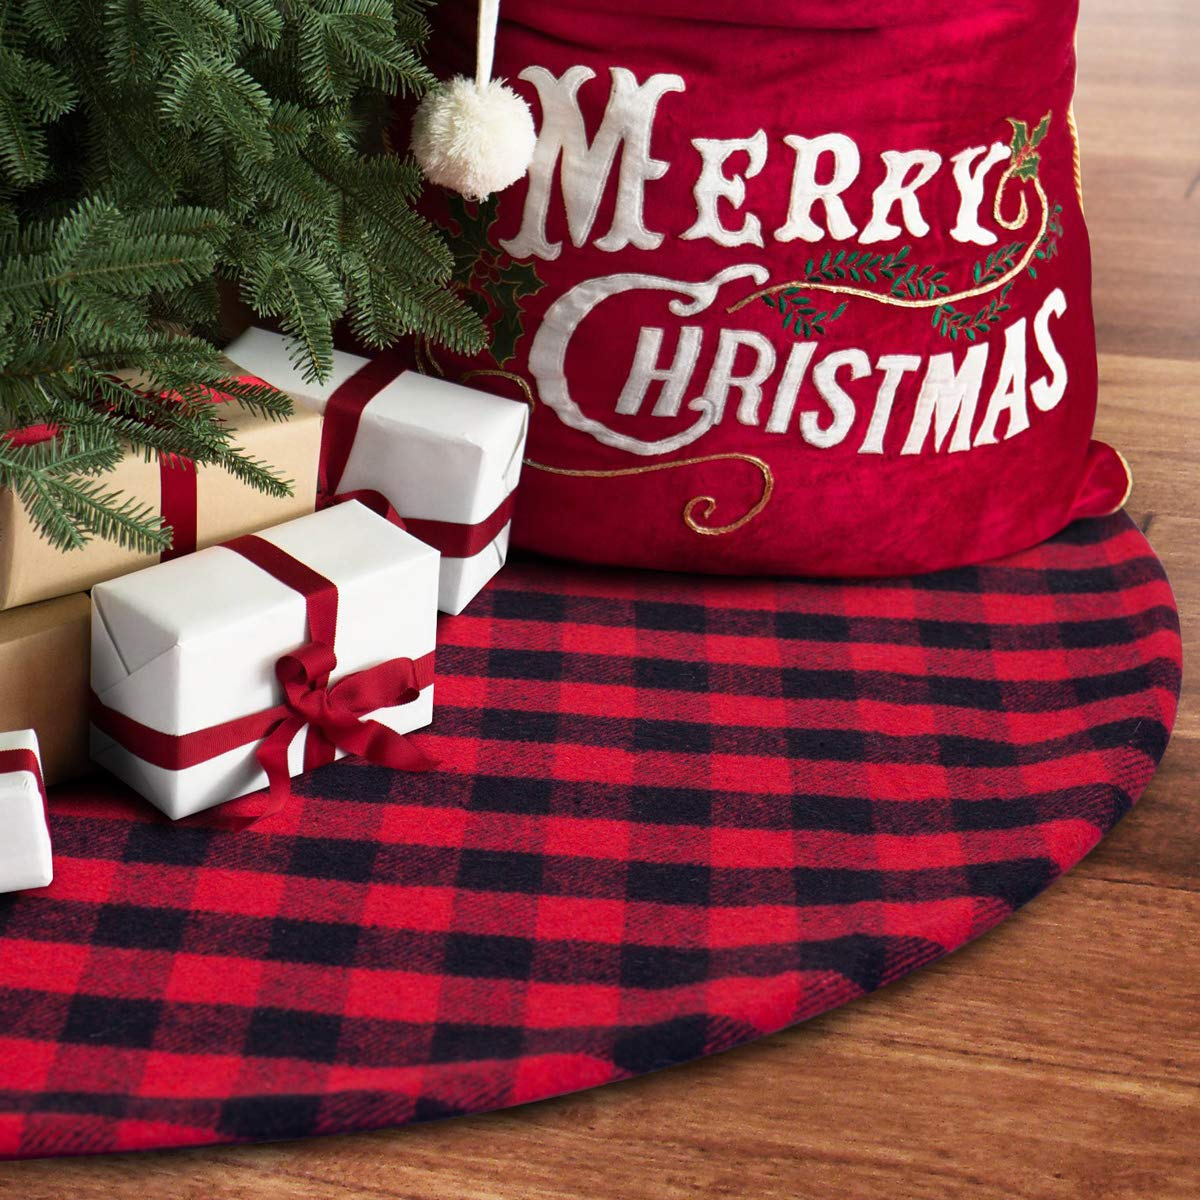 S-DEAL 48 Inches Christams Tree Skirt Red and Black Plaid Buffalo Double Layers Checked Deco for Holiday Party Mat Xmas Ornaments